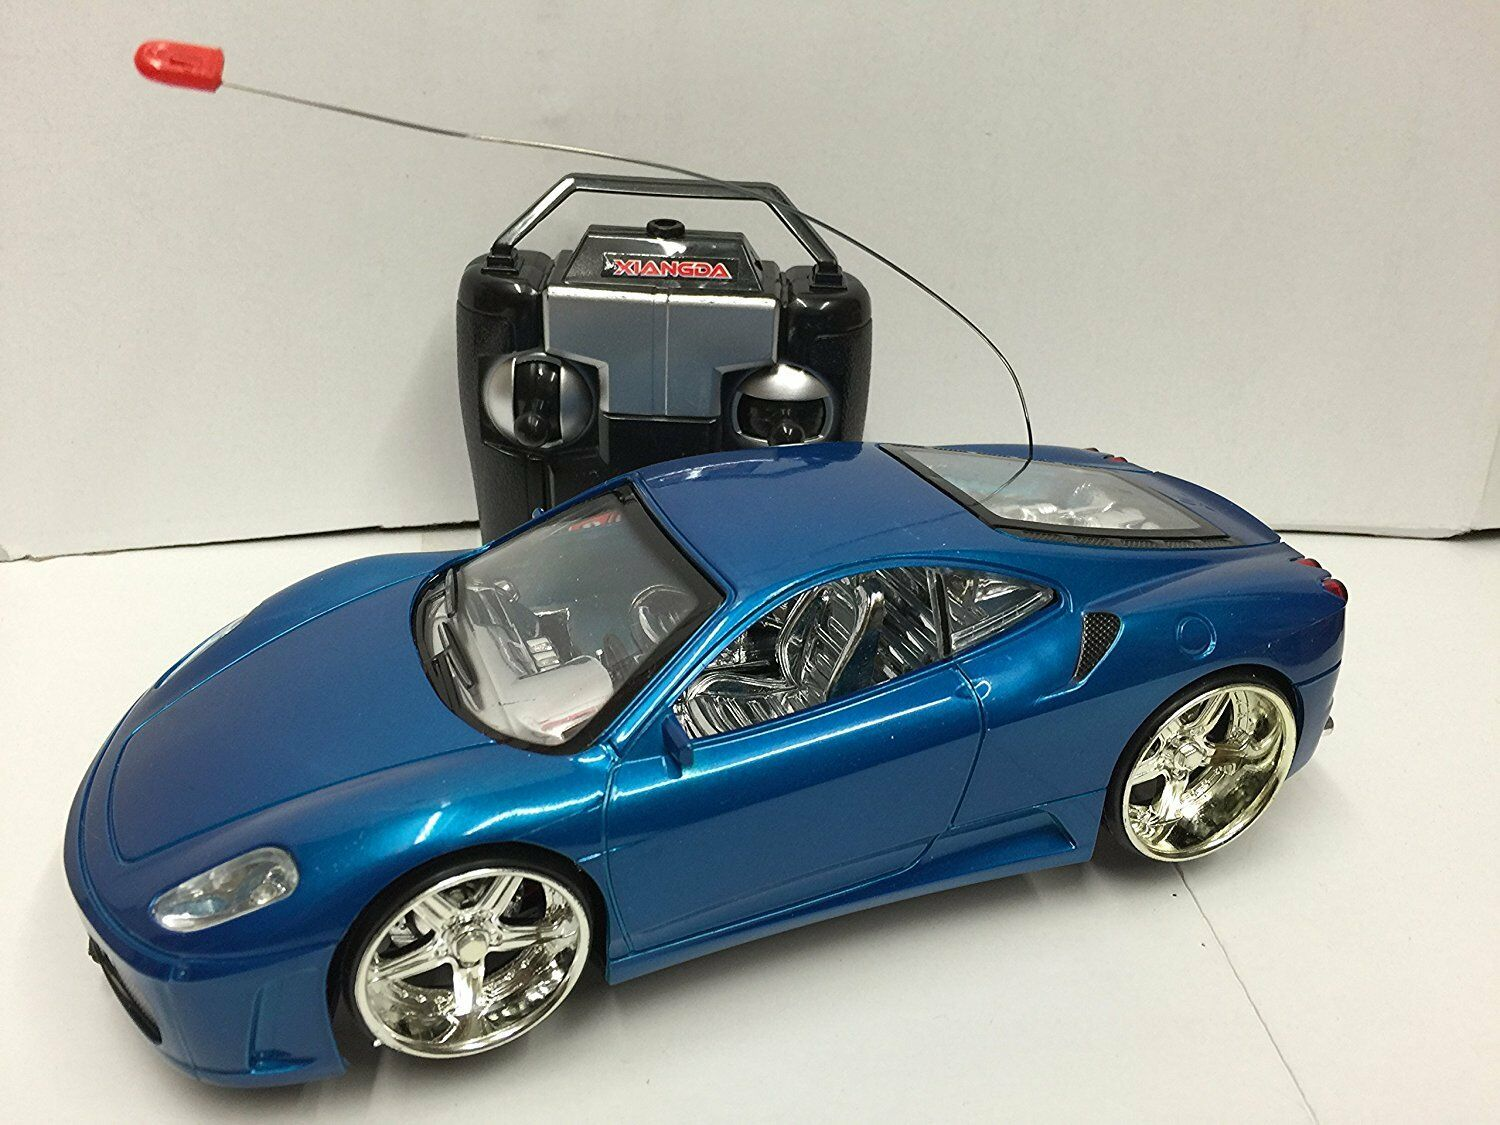 FERRARI SPIDER RADIO REMOTE CONTROL CAR LED LIGHTS FLASH LIGHT FOR GIRLS OR BOYS